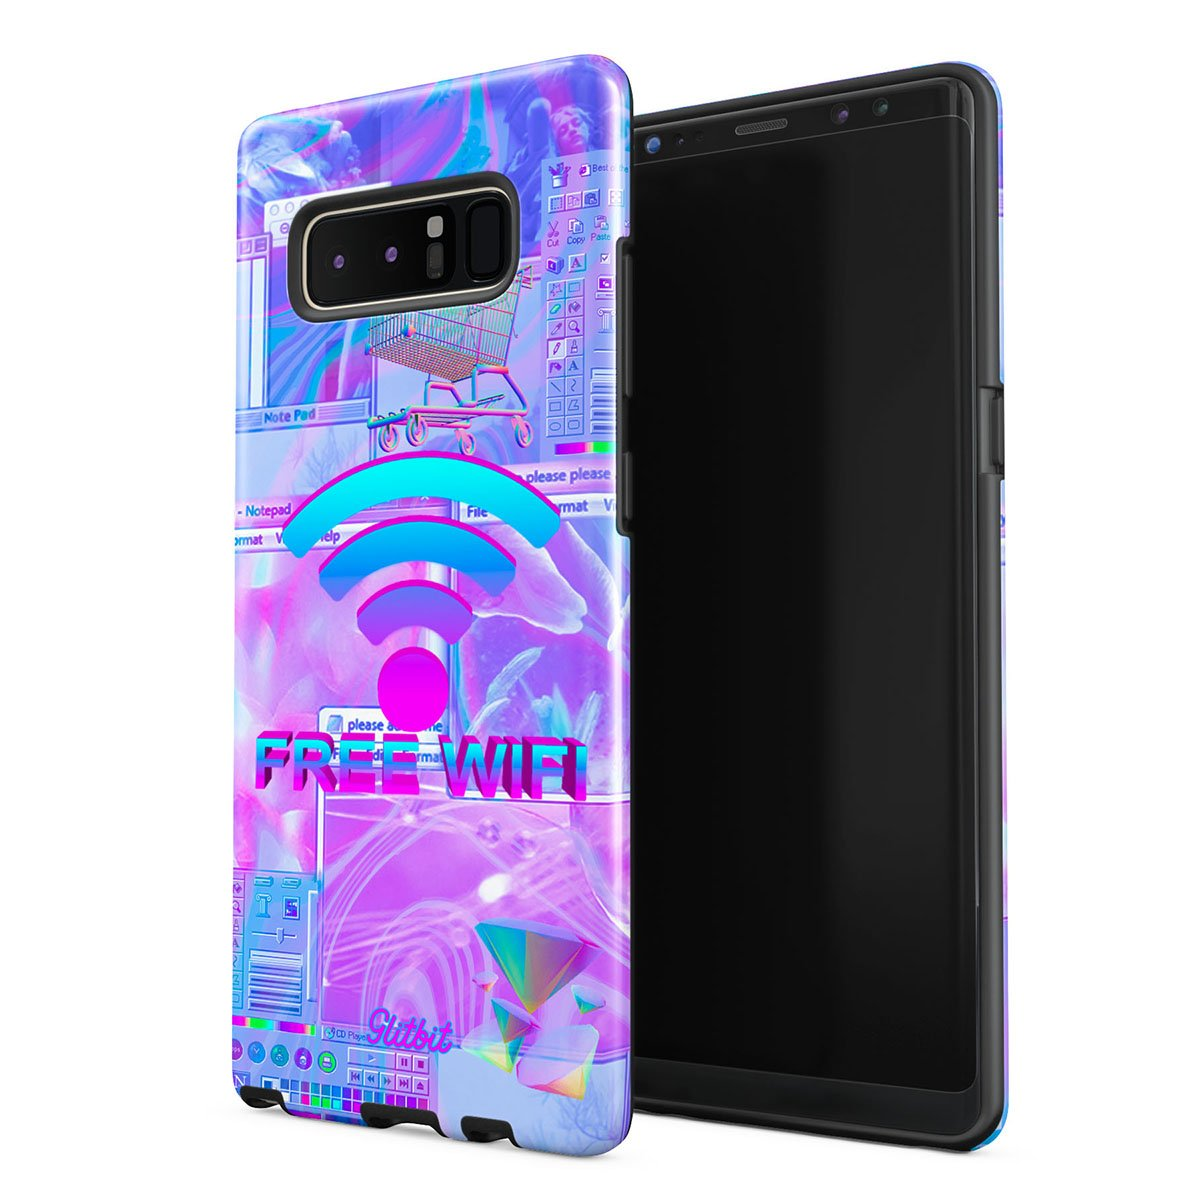 Glitbit Compatible with Samsung Galaxy Note 8 Case Free WiFi Vaporwave Oldschool Retro 80s 90s Purple Aesthetic Computer Glitch Shockproof Dual Layer Hard Shell + Silicone Protective Cover by Glitbit